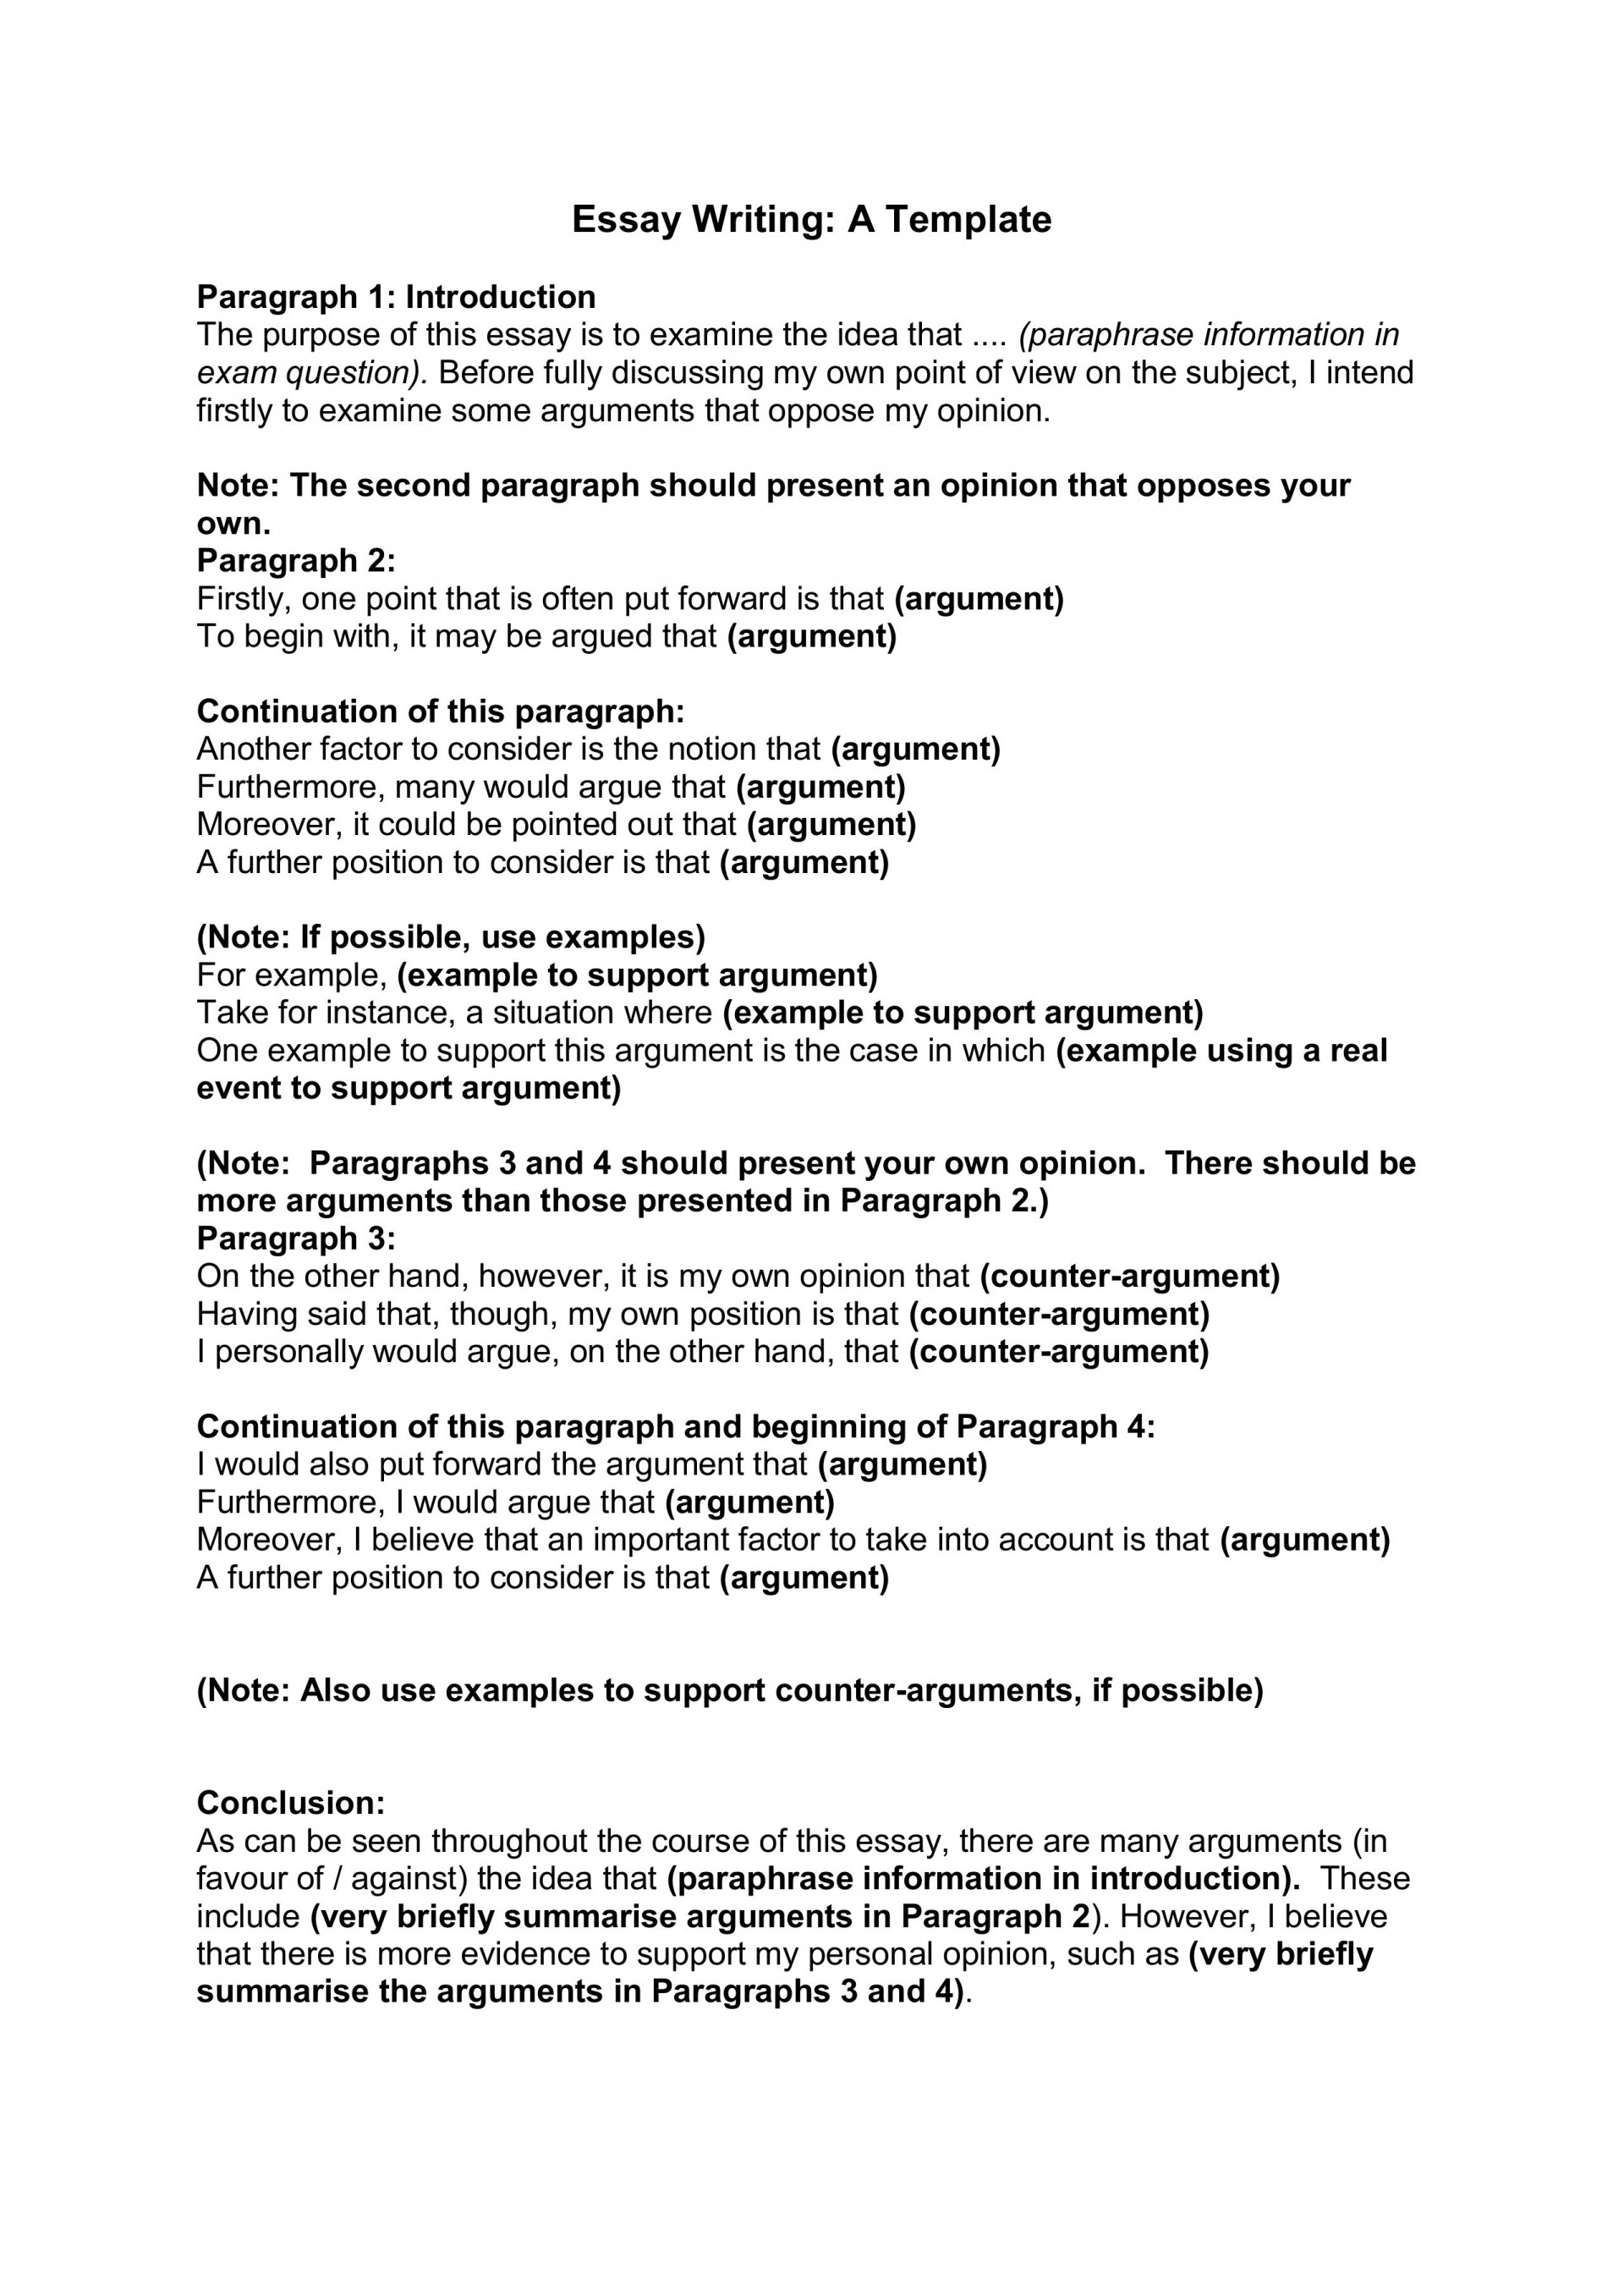 016 Image Essay Writing Homework Service Byassignmentdepa Good This I Believe Topics Template For P Sampless Stupendous Examples Npr College 1920